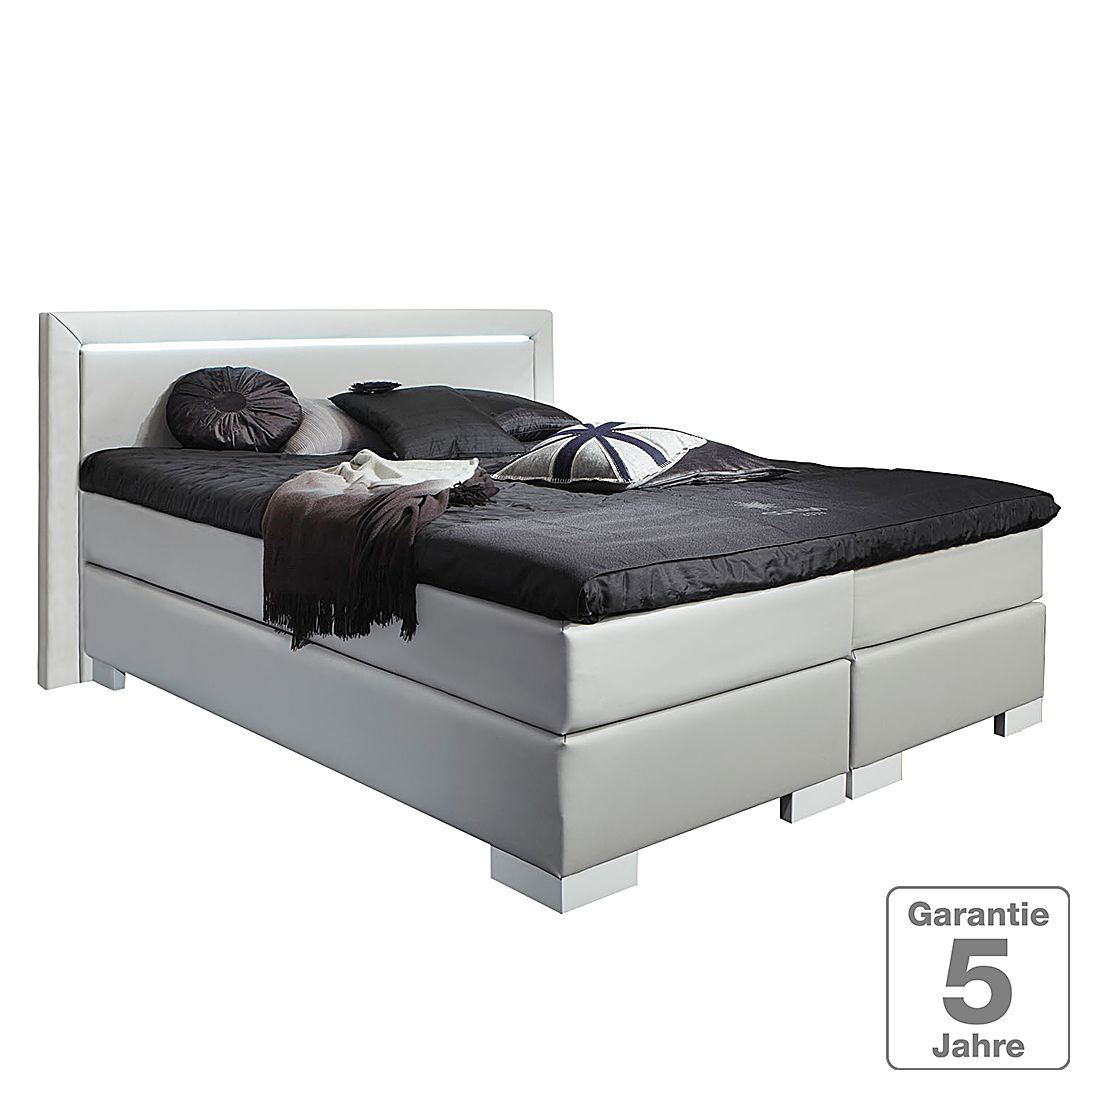 boxspringbett maila kunstleder 140 x 200cm h2 bis 80 kg hellgrau nova dream sleepline. Black Bedroom Furniture Sets. Home Design Ideas